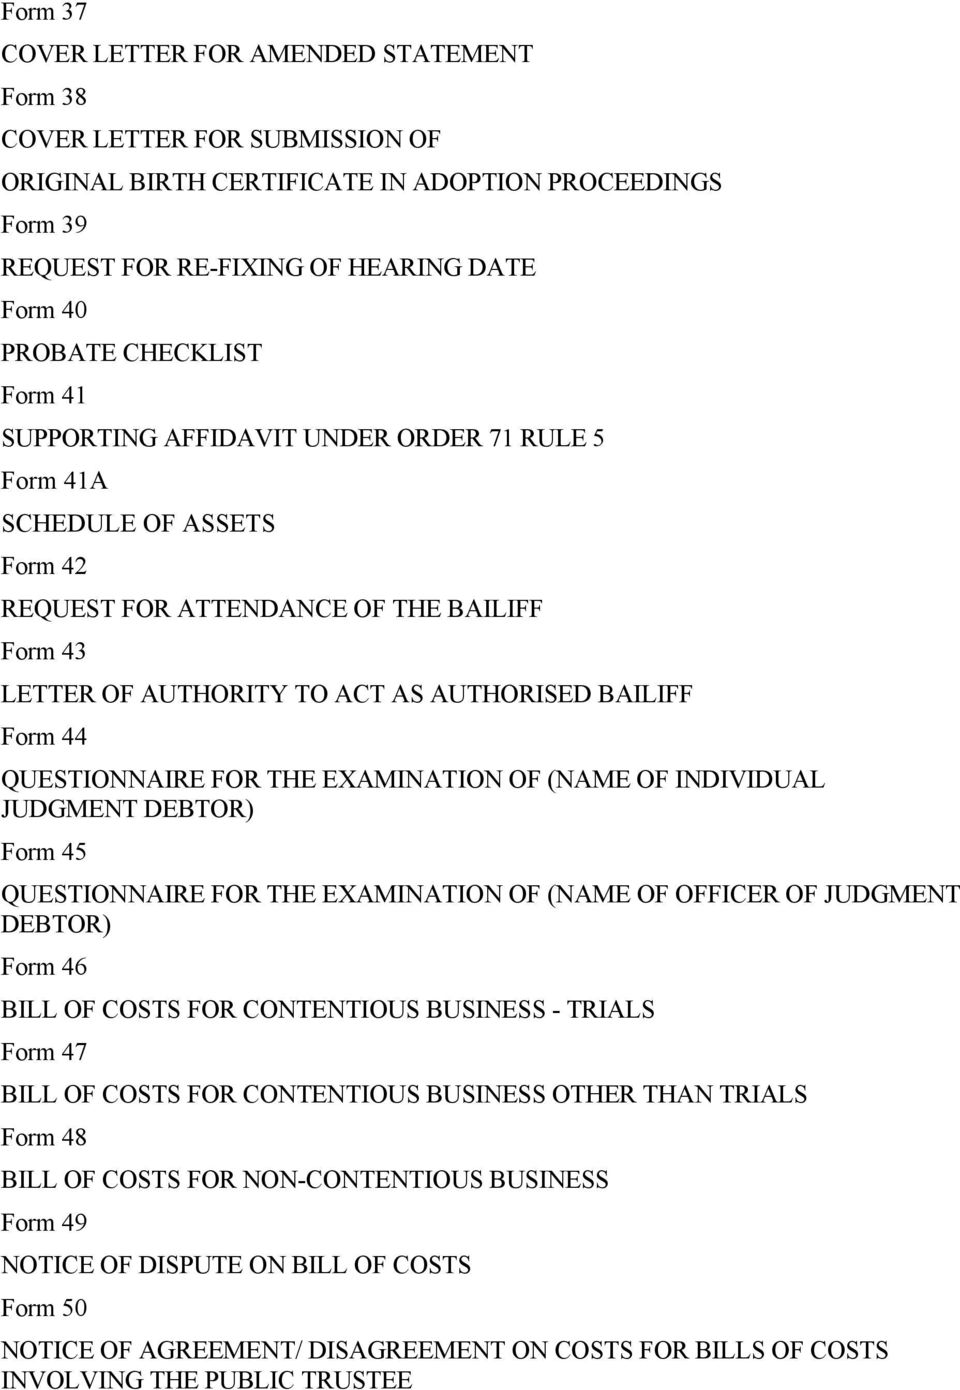 QUESTIONNAIRE FOR THE EXAMINATION OF (NAME OF INDIVIDUAL JUDGMENT DEBTOR) Form 45 QUESTIONNAIRE FOR THE EXAMINATION OF (NAME OF OFFICER OF JUDGMENT DEBTOR) Form 46 BILL OF COSTS FOR CONTENTIOUS